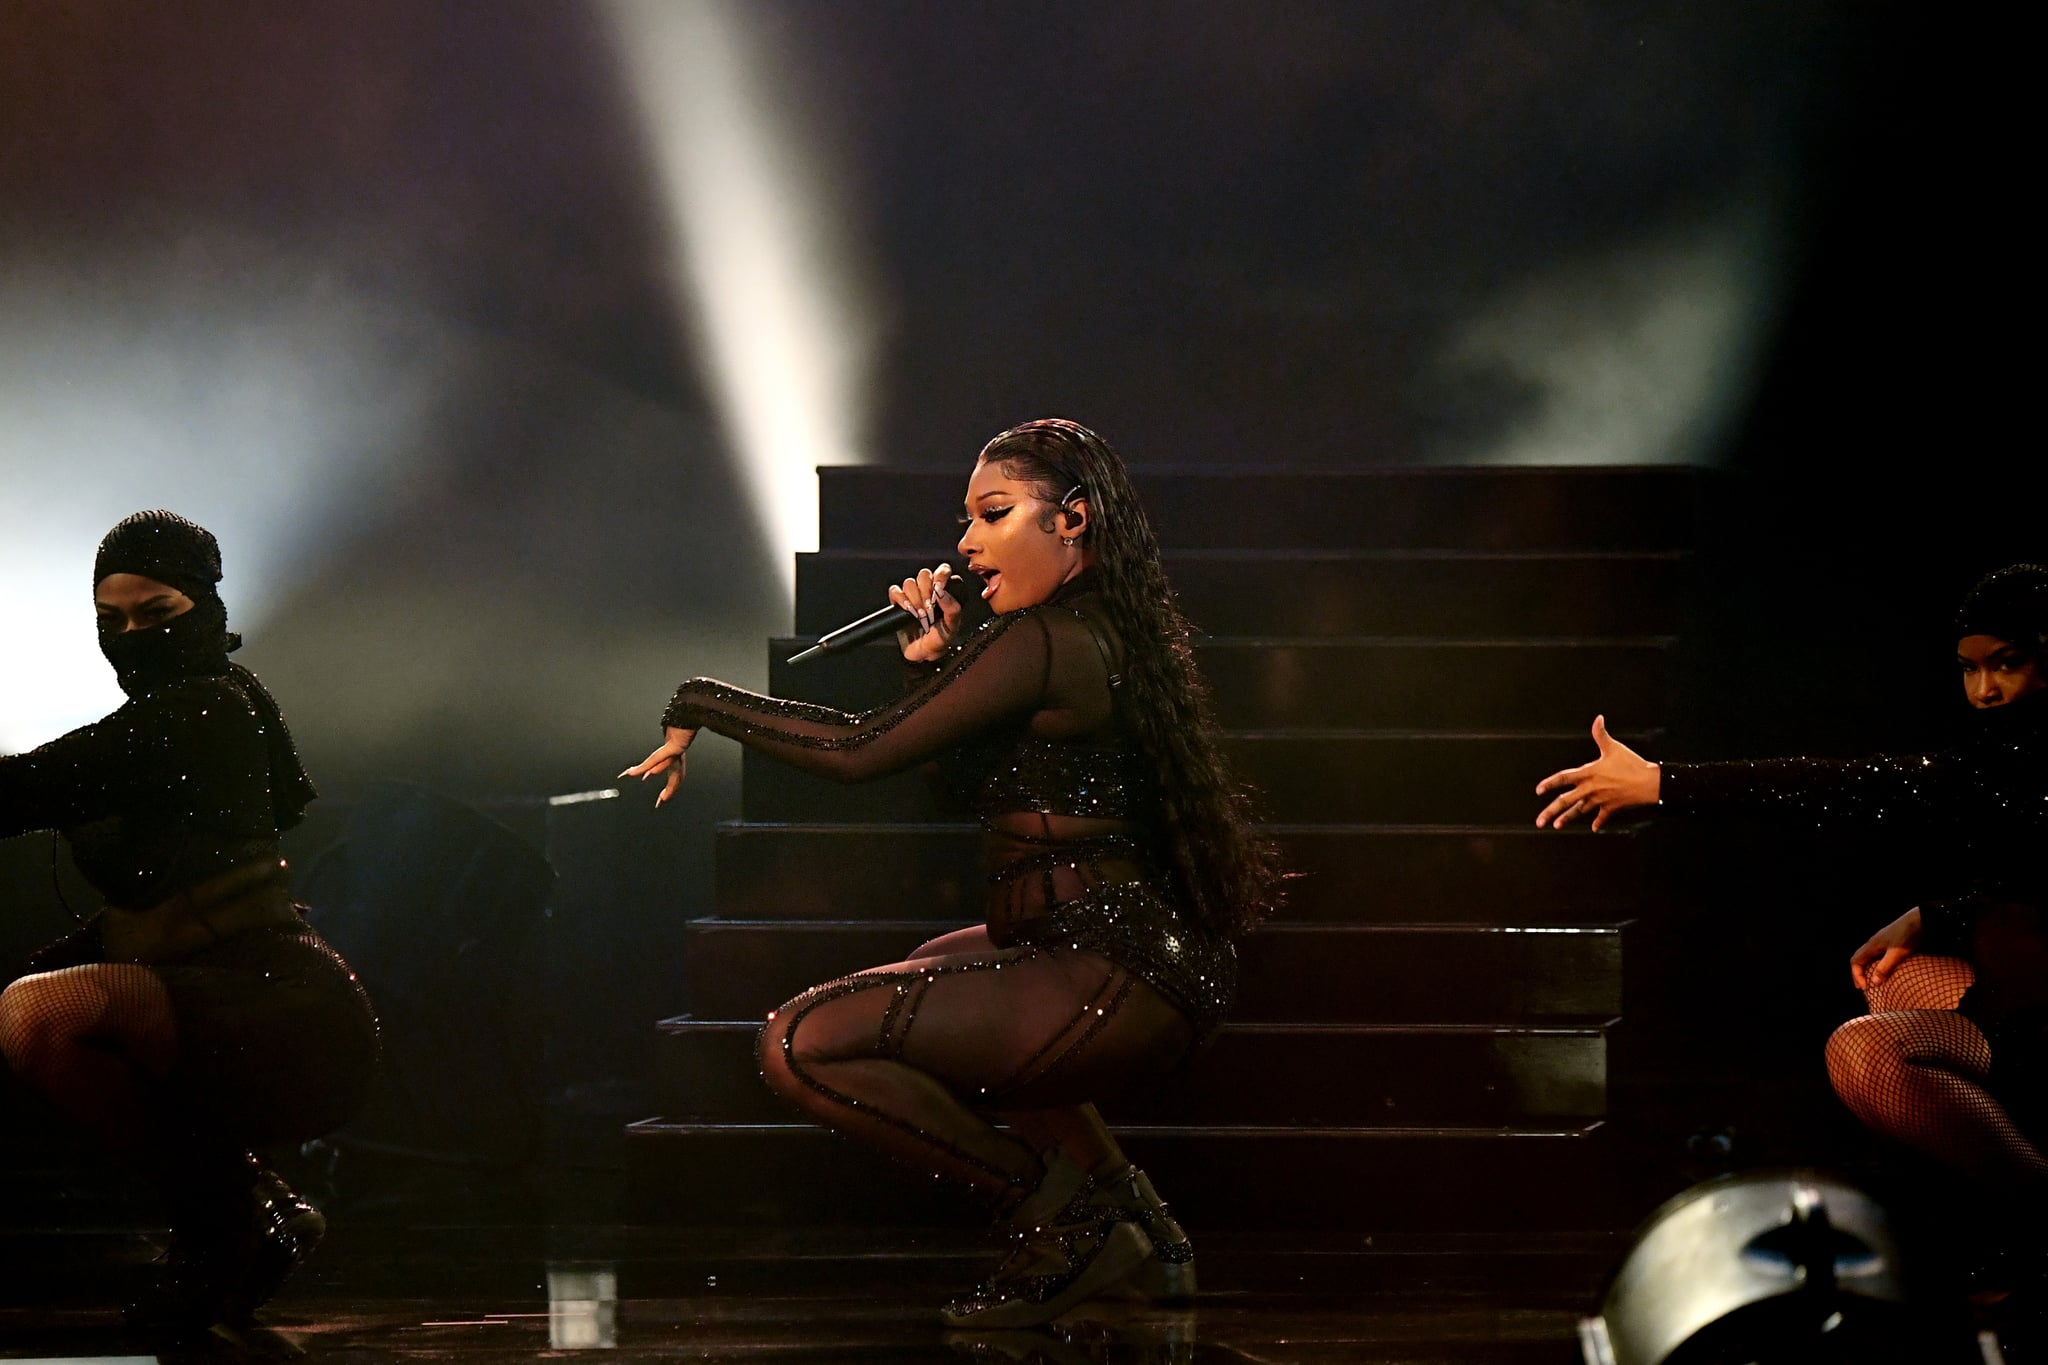 LOS ANGELES, CALIFORNIA - NOVEMBER 22: In this image released on November 22, Megan Thee Stallion performs onstage for the 2020 American Music Awards at Microsoft Theater on November 22, 2020 in Los Angeles, California. (Photo by Kevin Mazur/Getty Images for dcp)